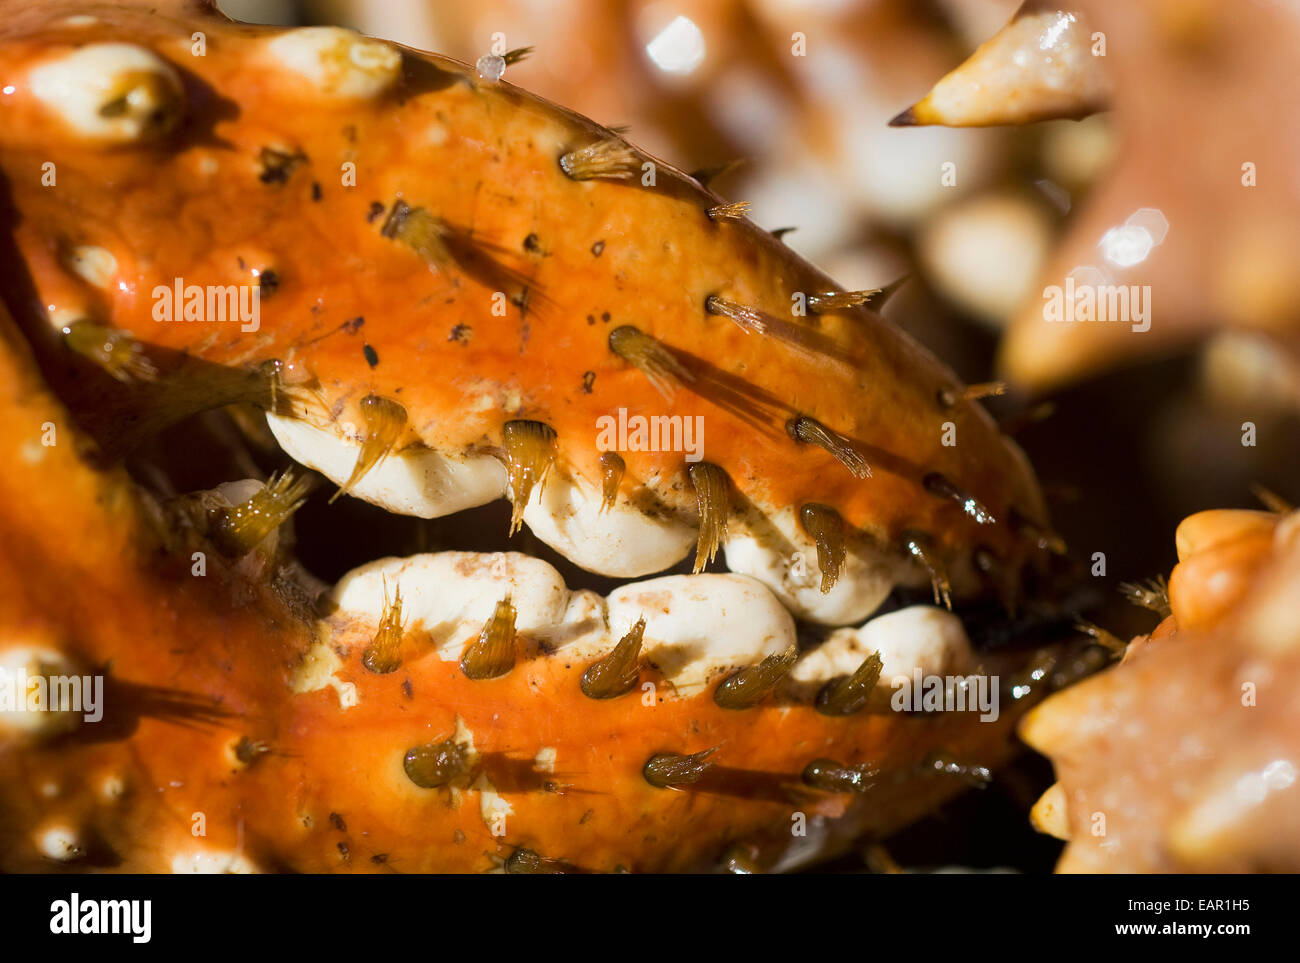 Close Up Of A Brown Crab Claw, Alaska - Stock Image